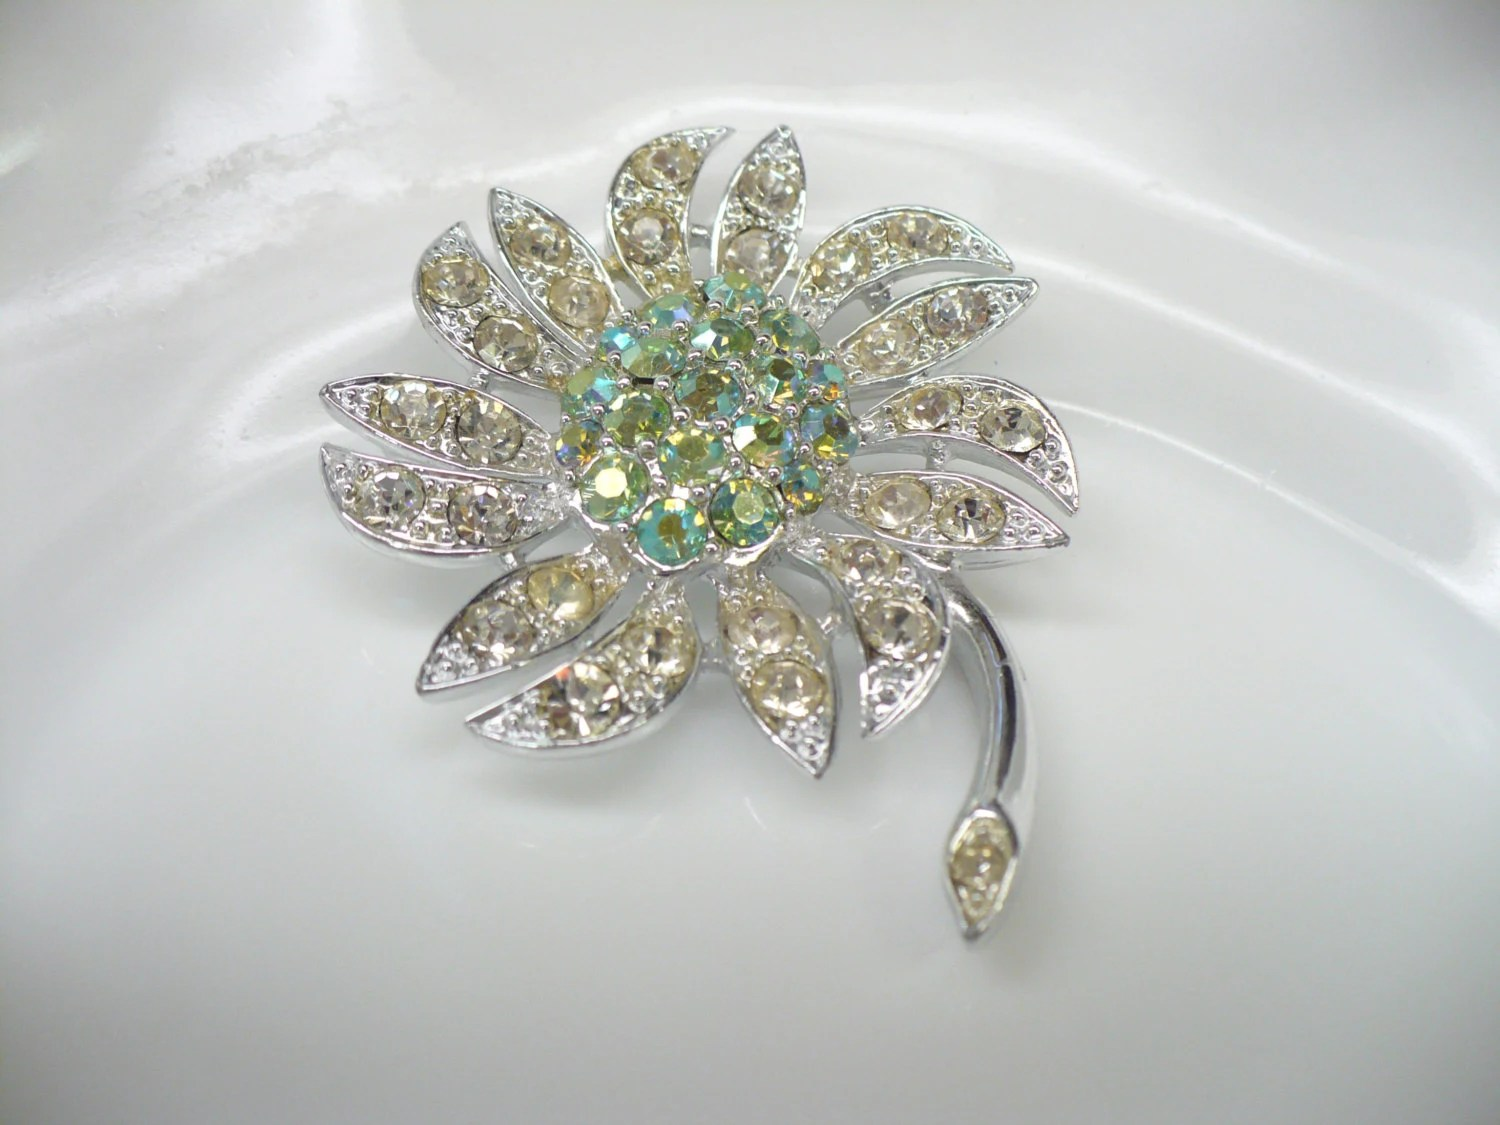 Vintage SARAH COVENTRY 'Mountain Flower' Brooch - ElegantiTesori